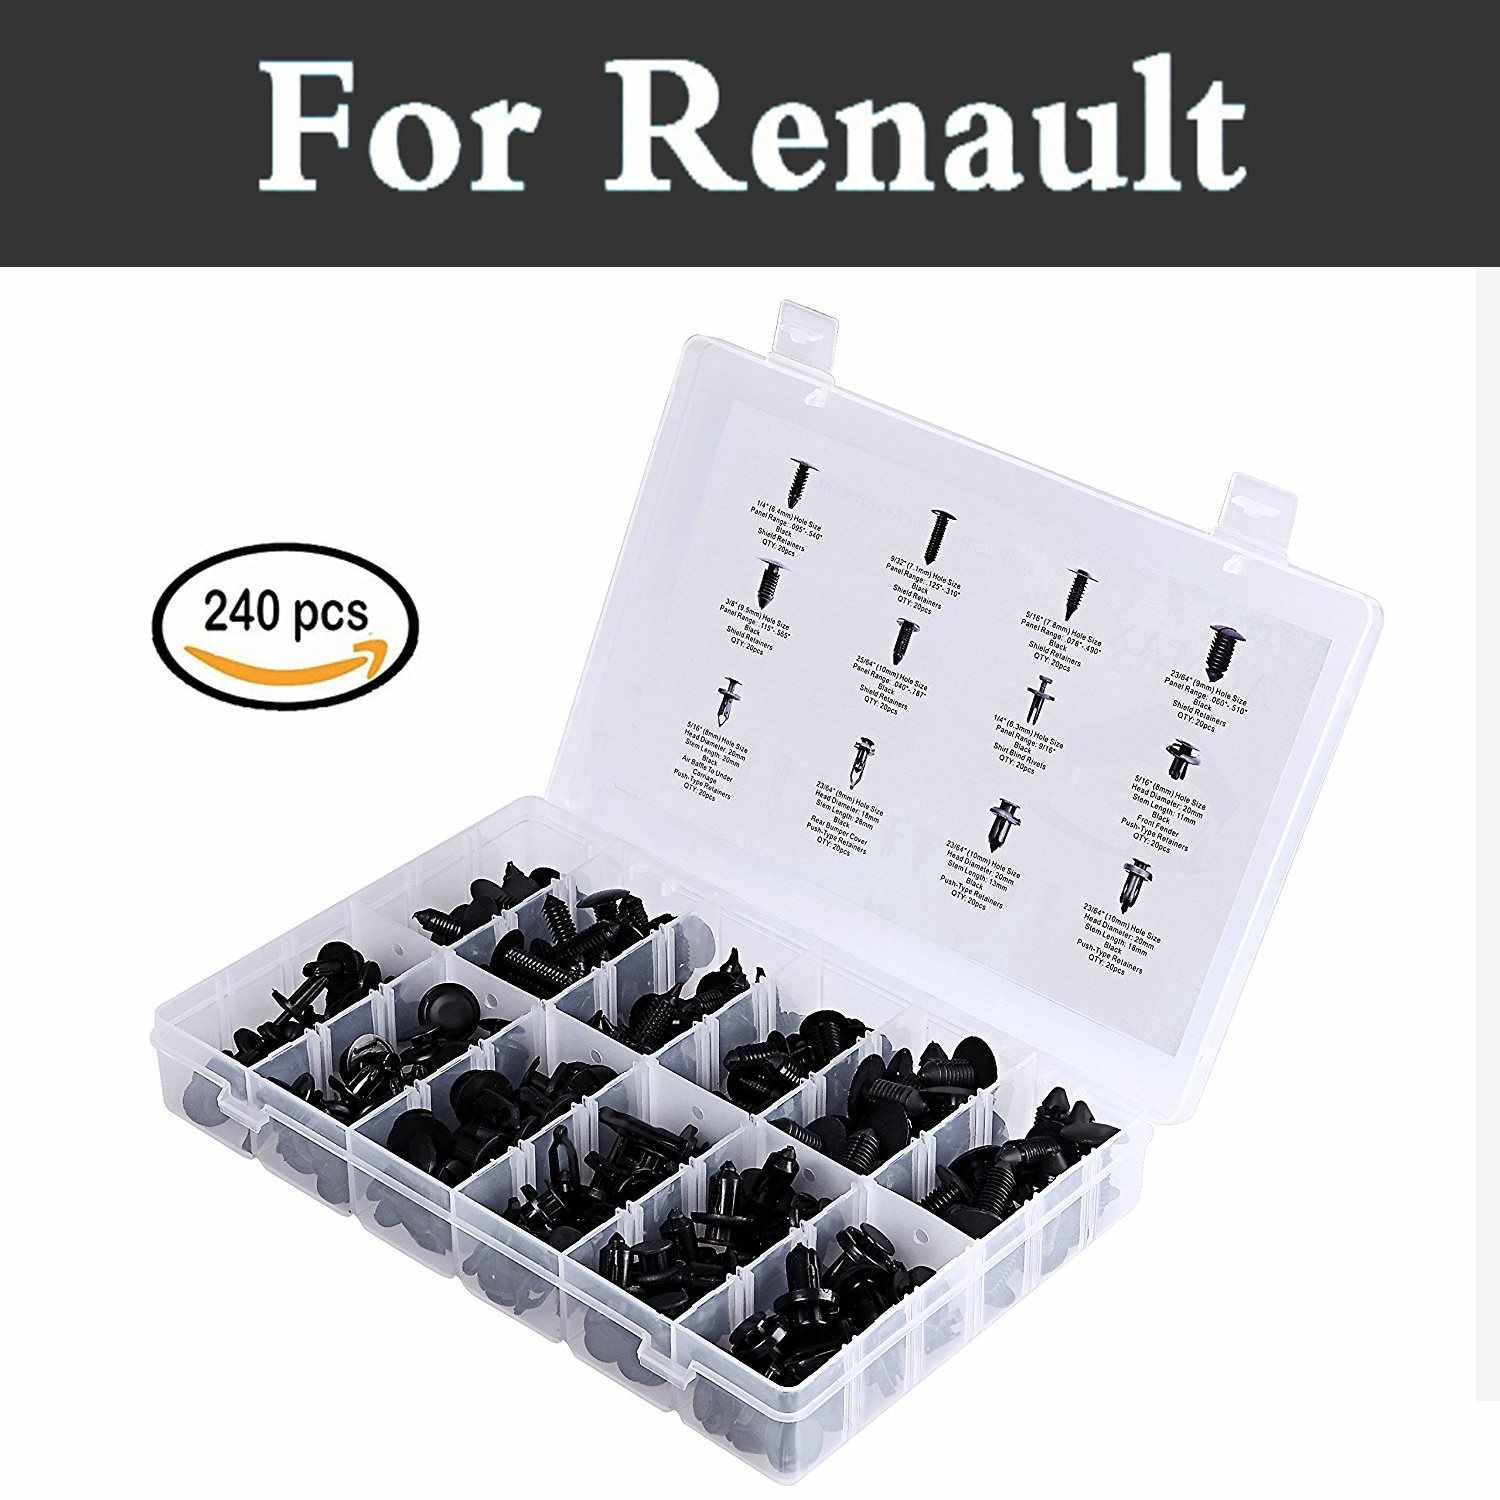 MOUNTING HOLDER CAR BODY TRIM CLIPS Renault